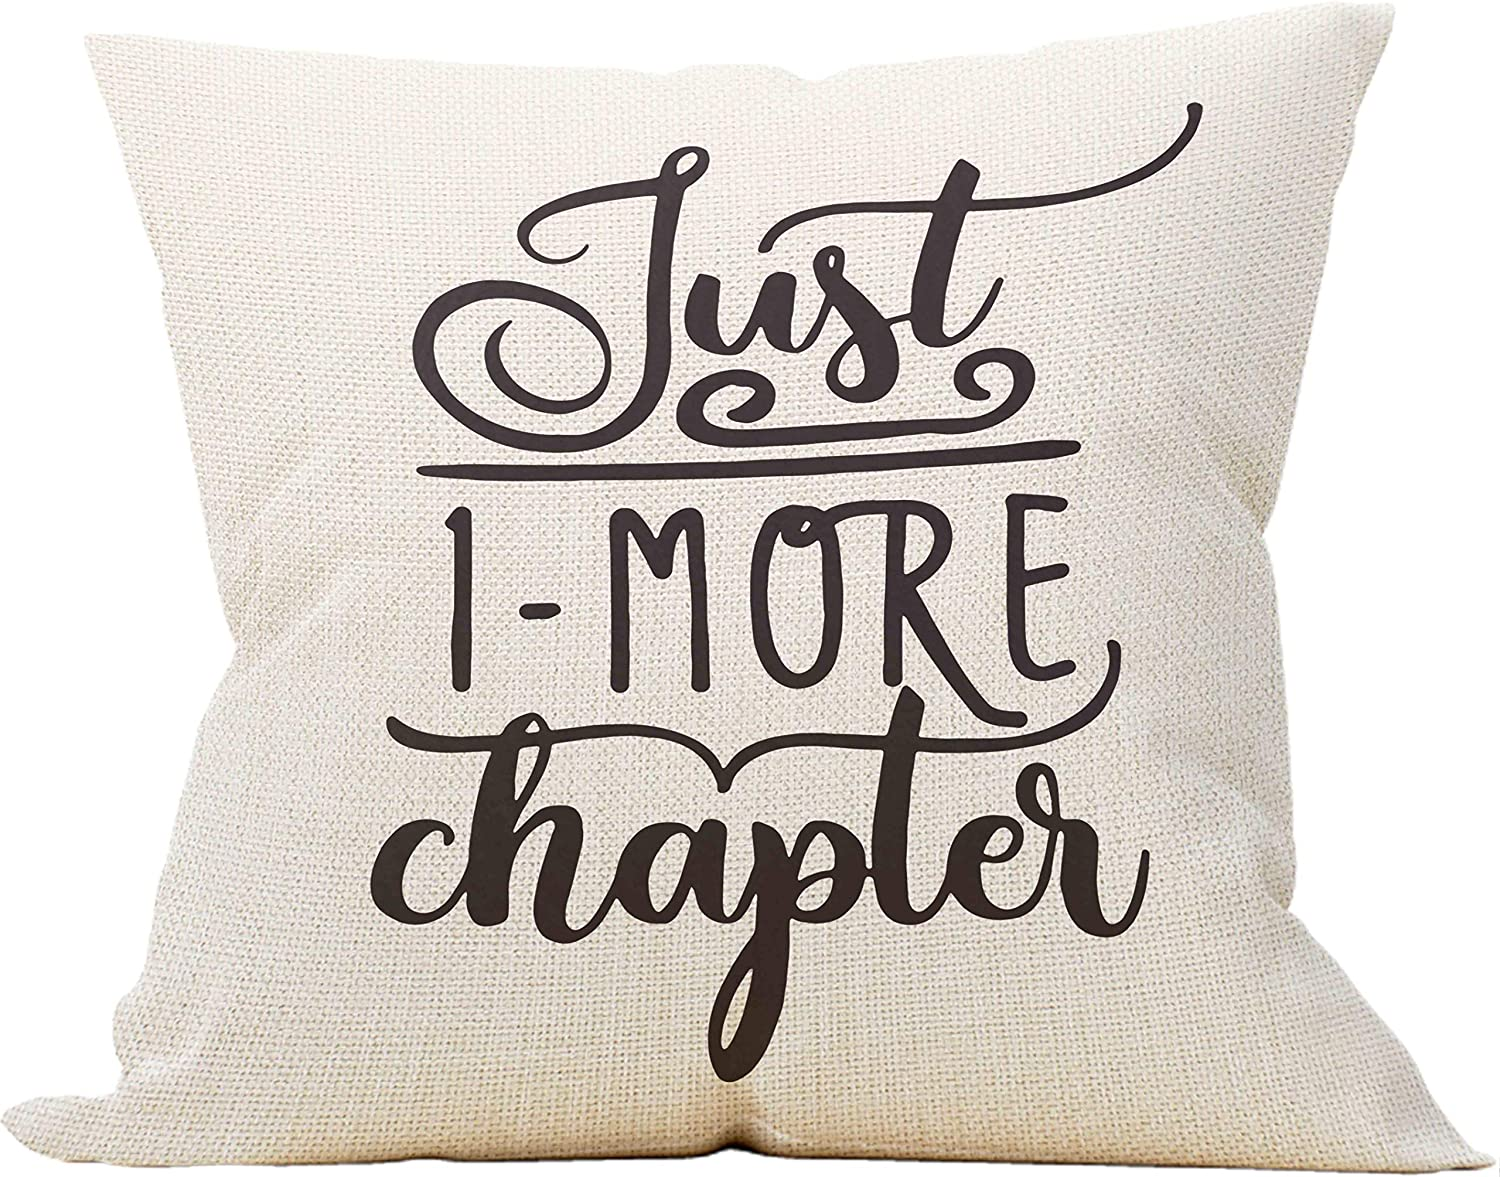 Just One More Chapter Throw Pillow Case, Gift for Book Lover, Librarian Gifts, Reader Gift, Reading Book Club, Reading Nook Decor, Cotton Linen Cushion Cover for Sofa Couch Bedroom, Decor 18 x 18 Inch